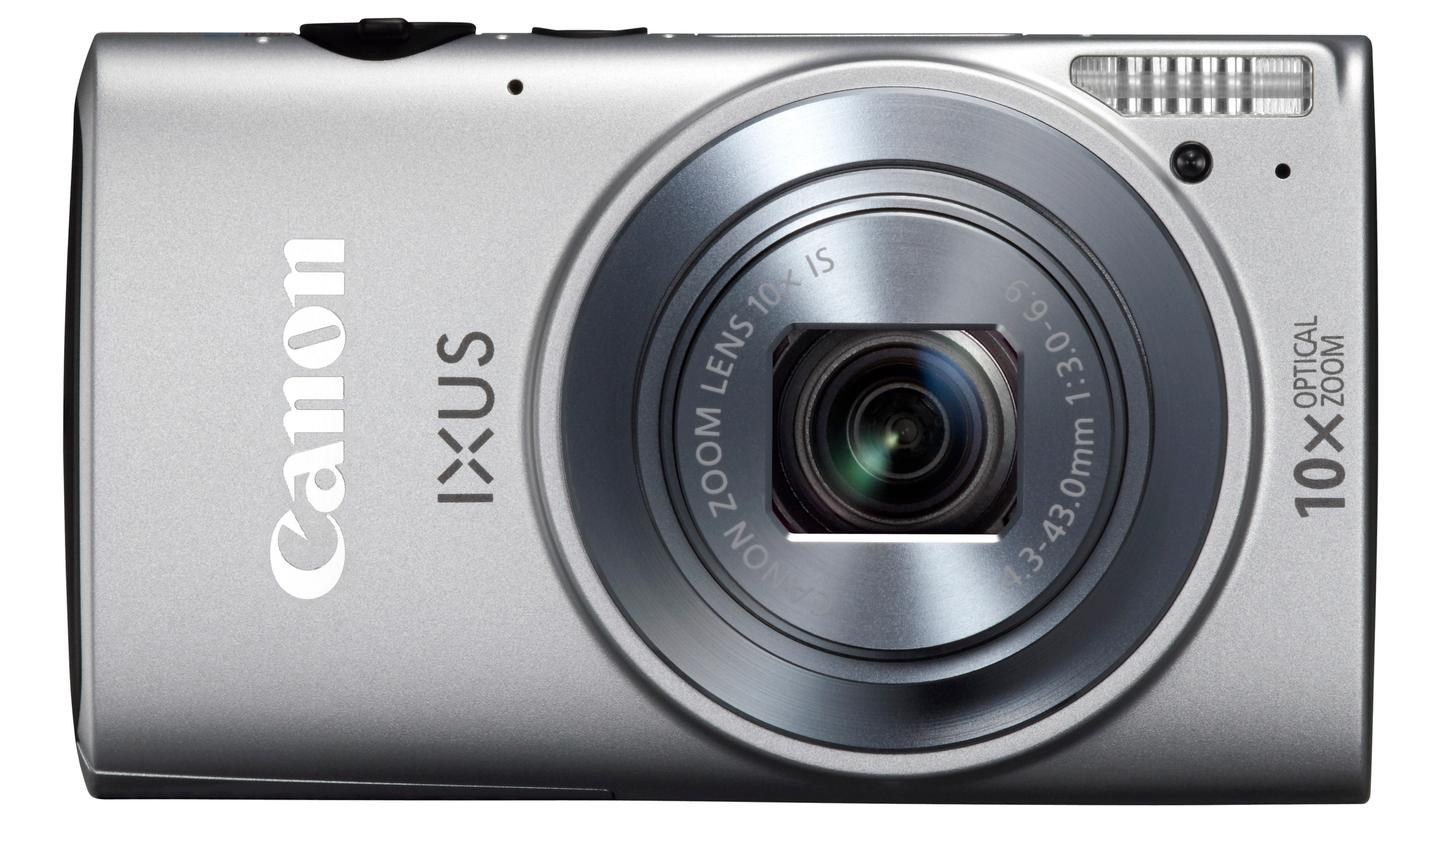 The Canon IXUS 255 HS (ELPH 330 HS) boasts Wi-Fi sharing and GPS via your smartphone